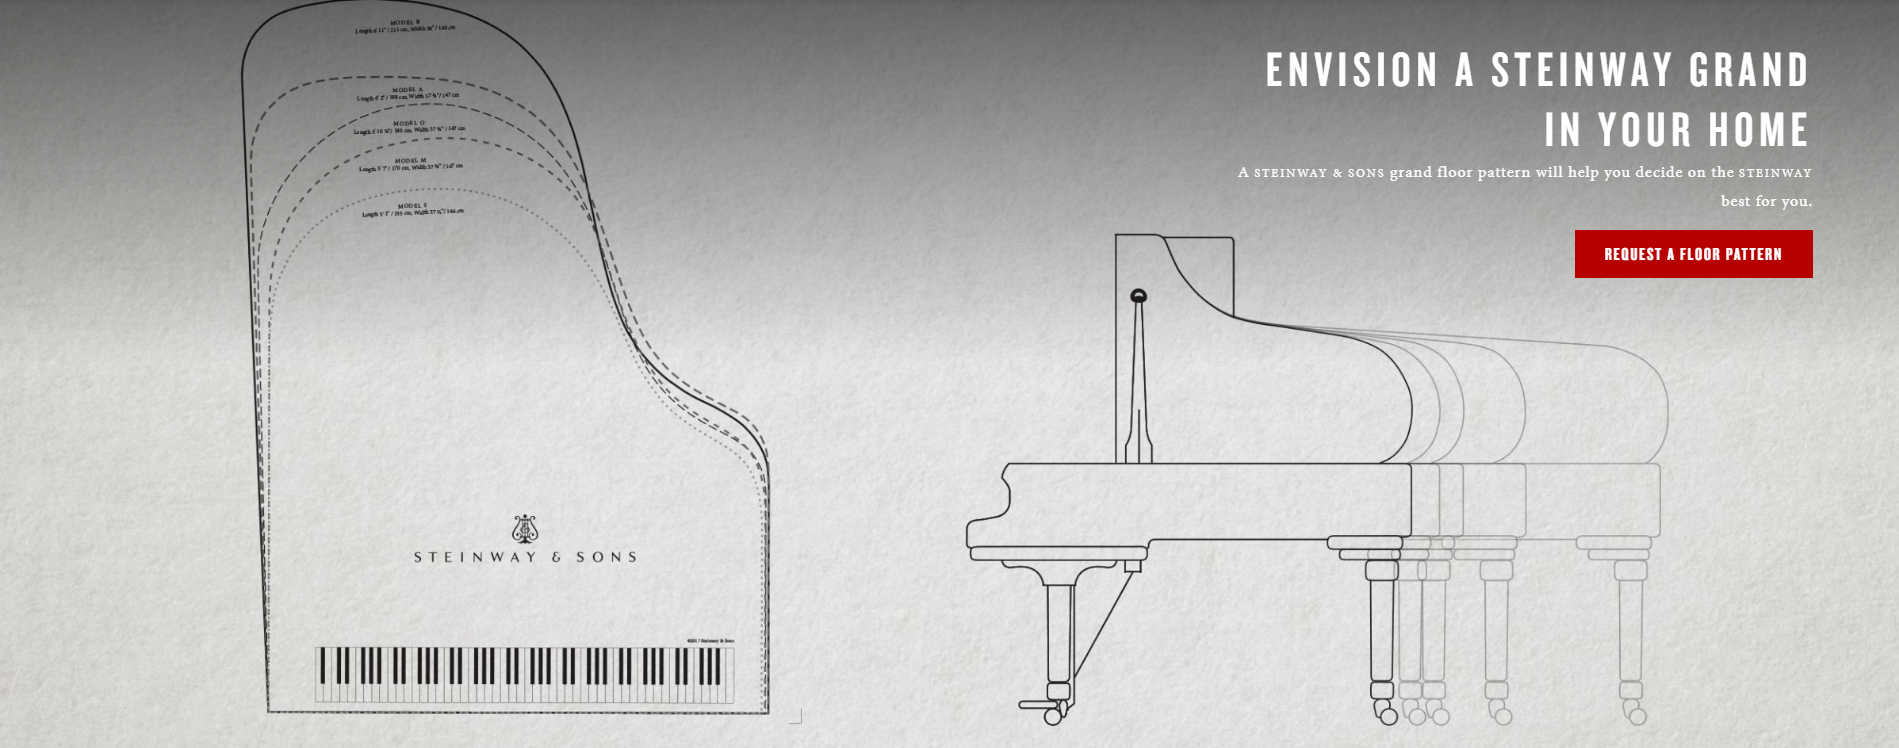 Envision A Steinway Grand In Your Home Sons Piano Diagram With Notes Find Which Fits Perfectly Space Template Or Book An Appointment Our Complimentary Specialist Who Can Help You